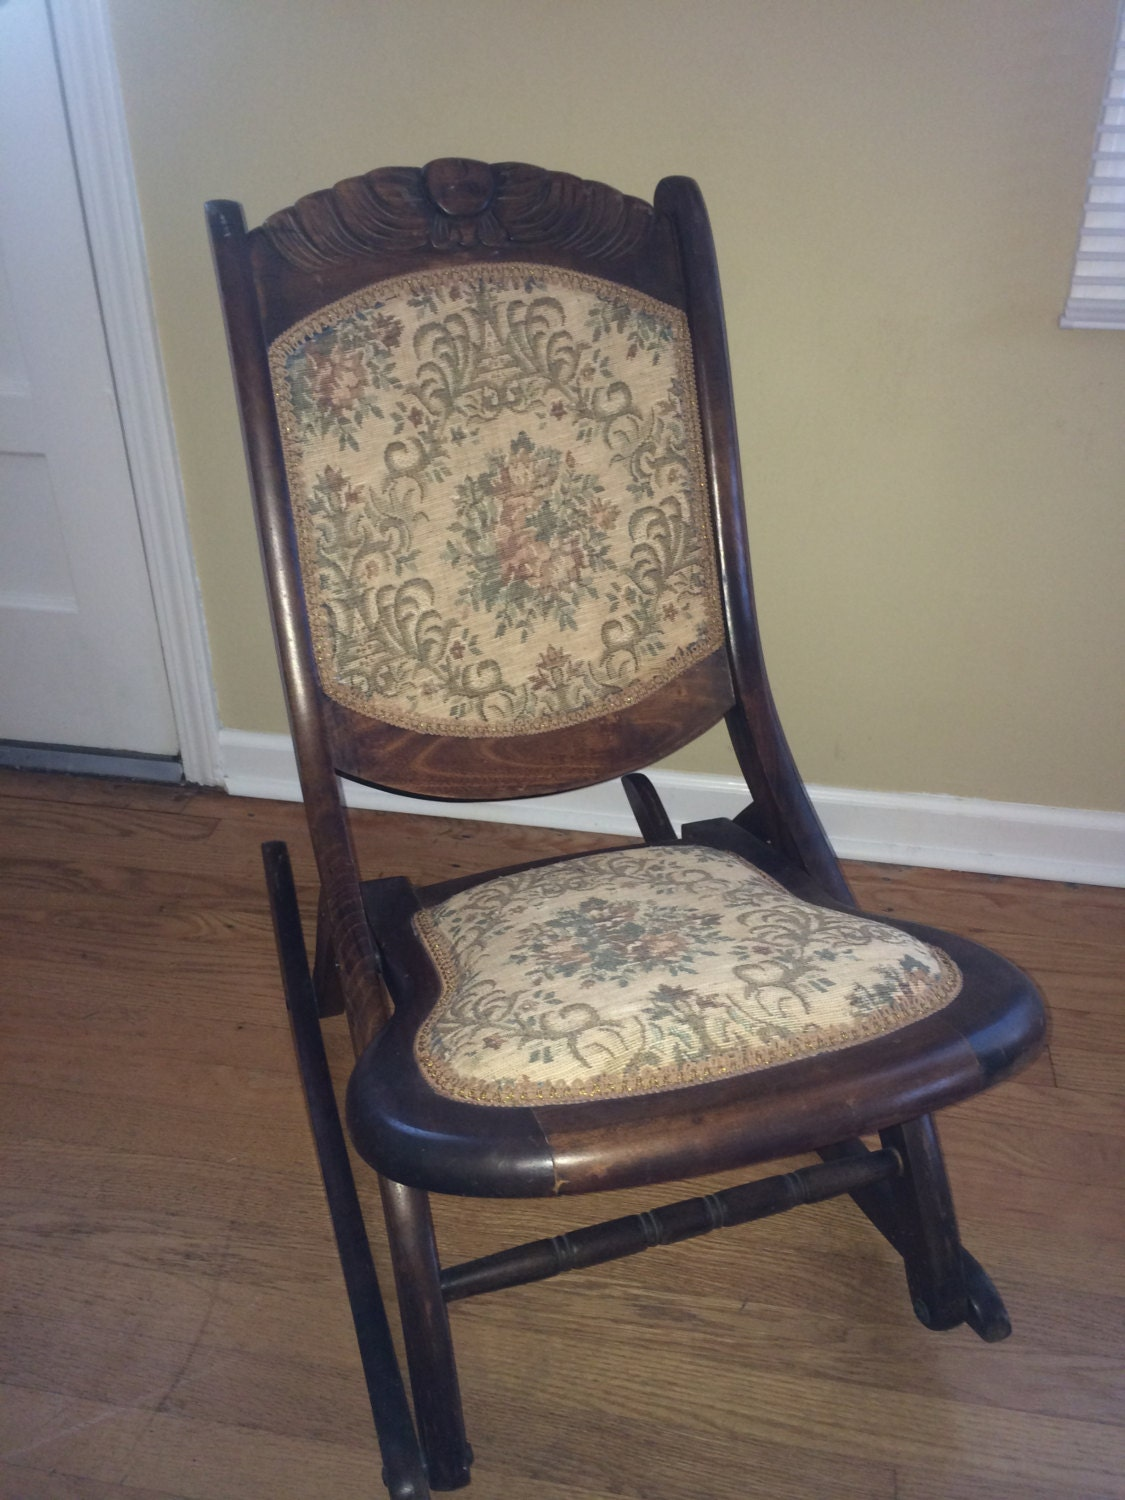 Antique Wooden Chairs ~ Wooden hand carved antique rocking chair embroidered seat and